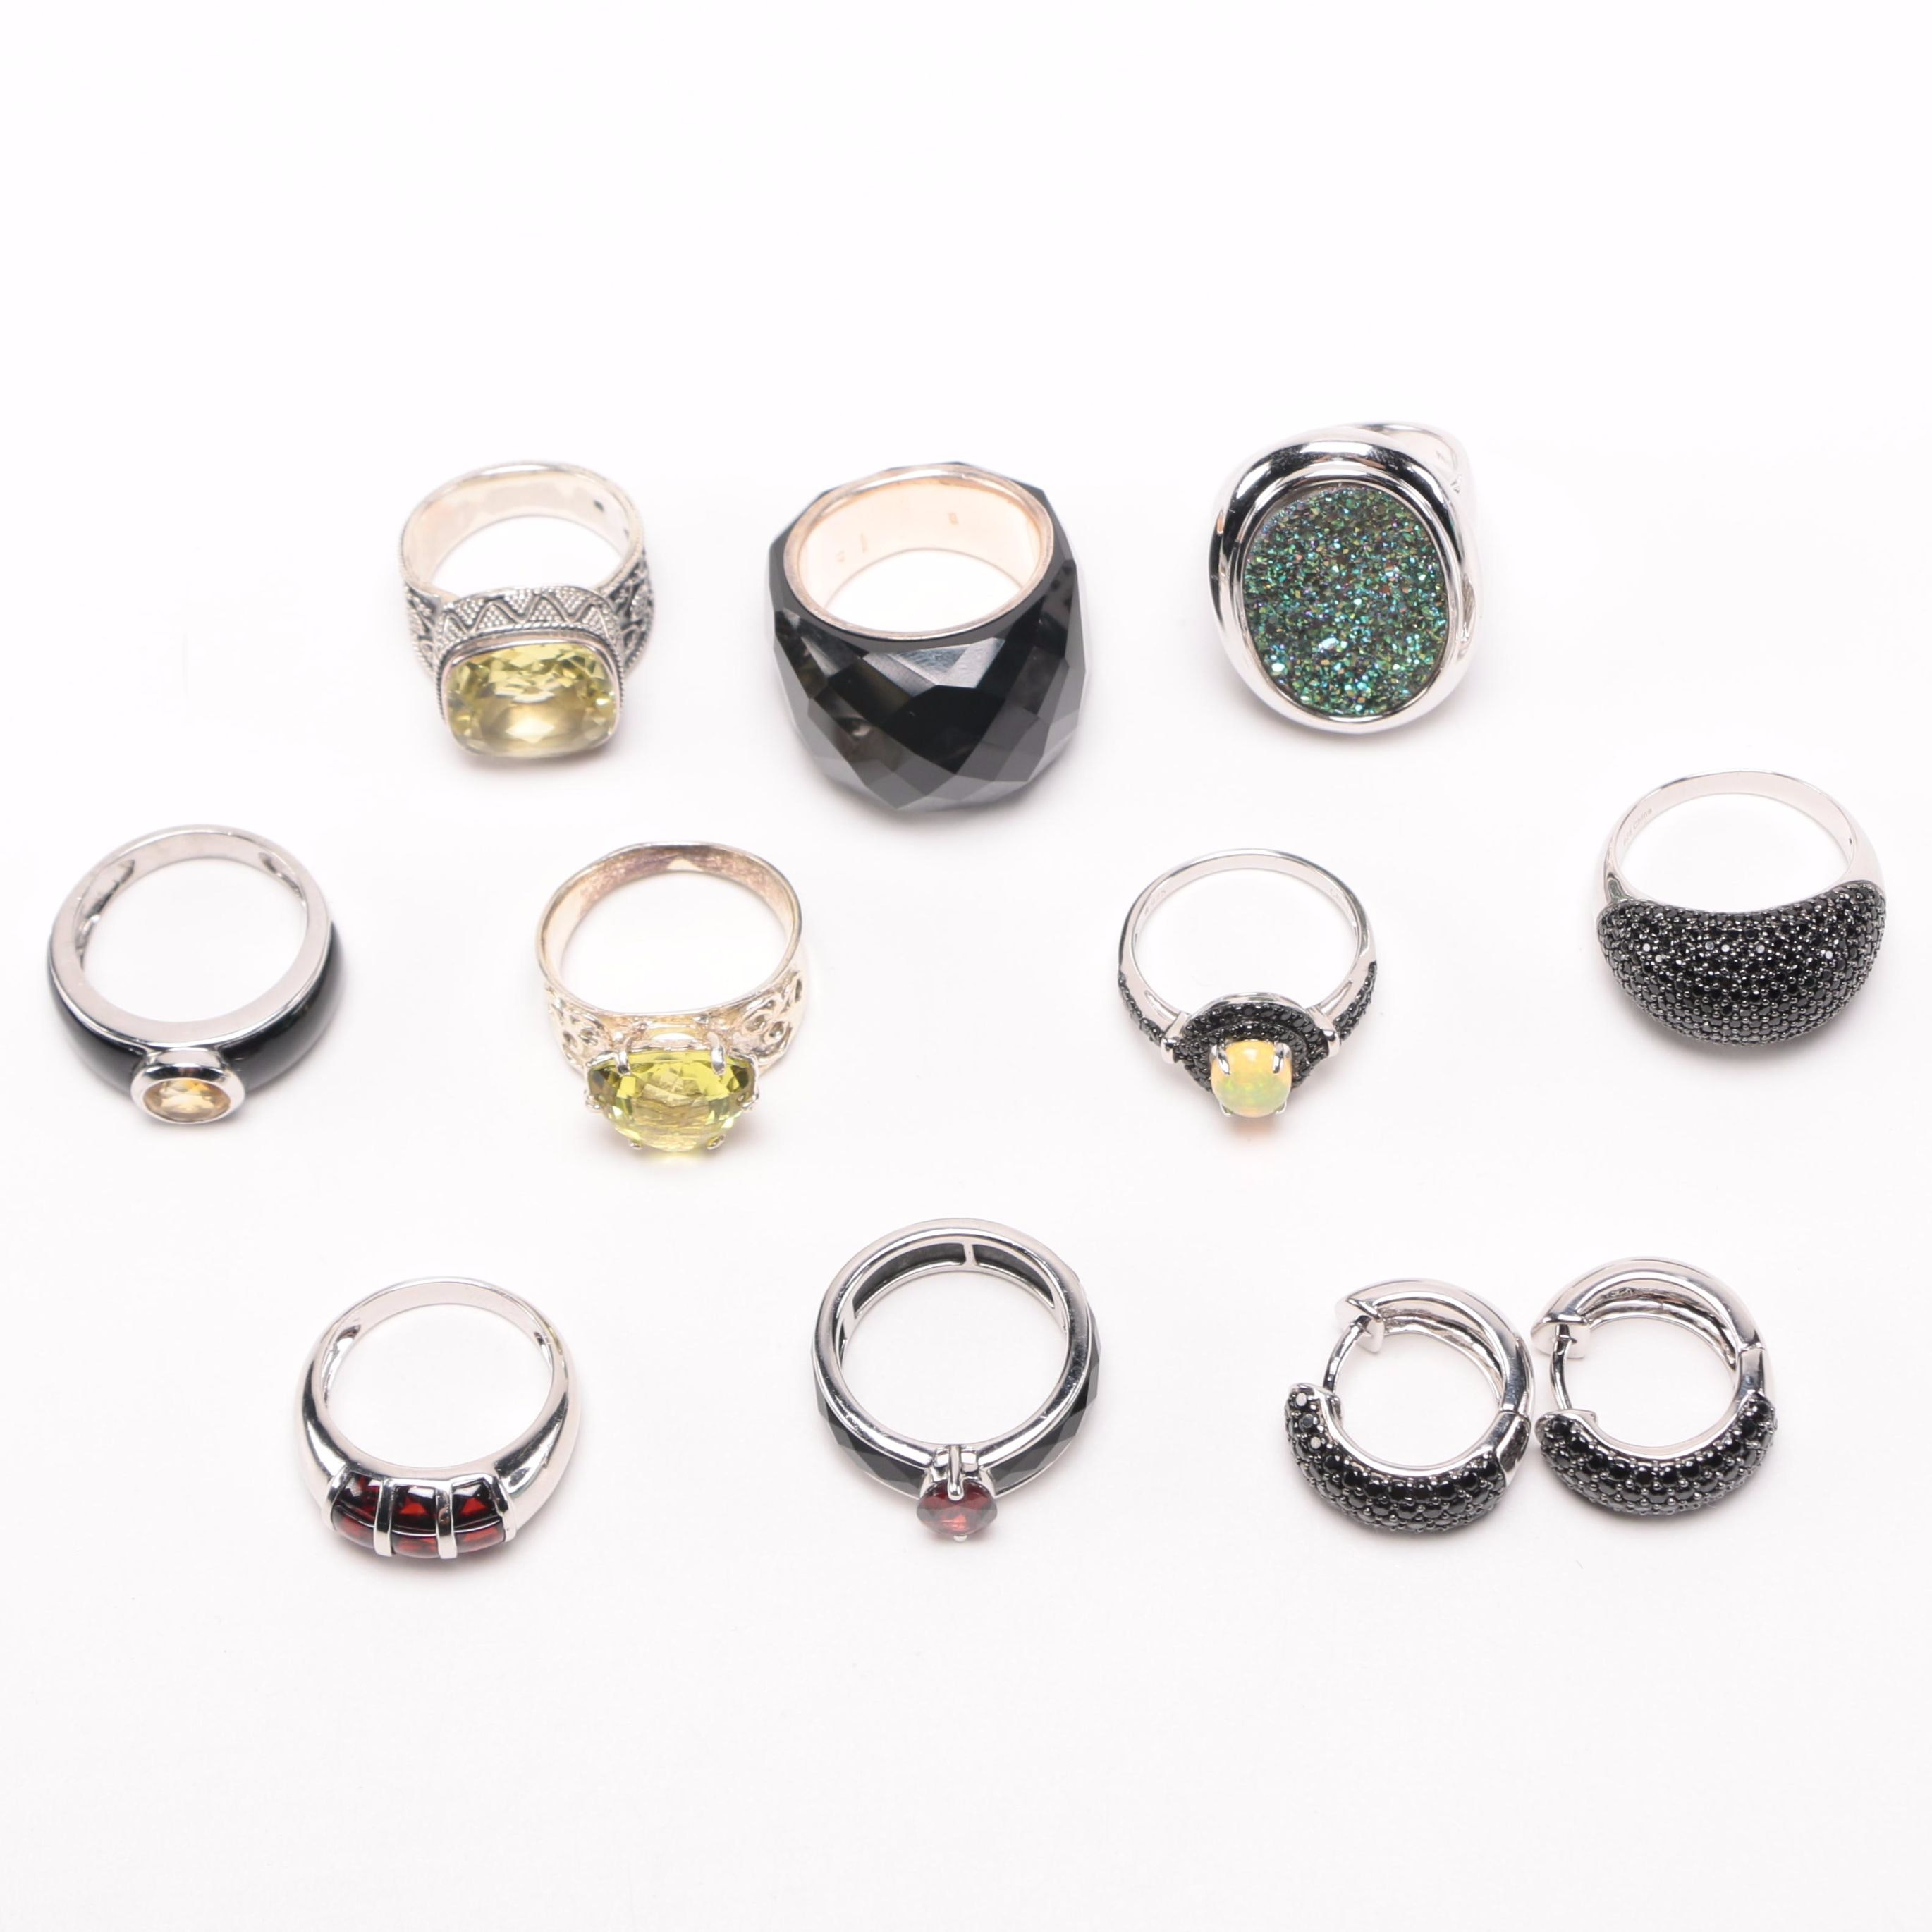 Sterling Silver and Gemstone Ring and Earring Assortment